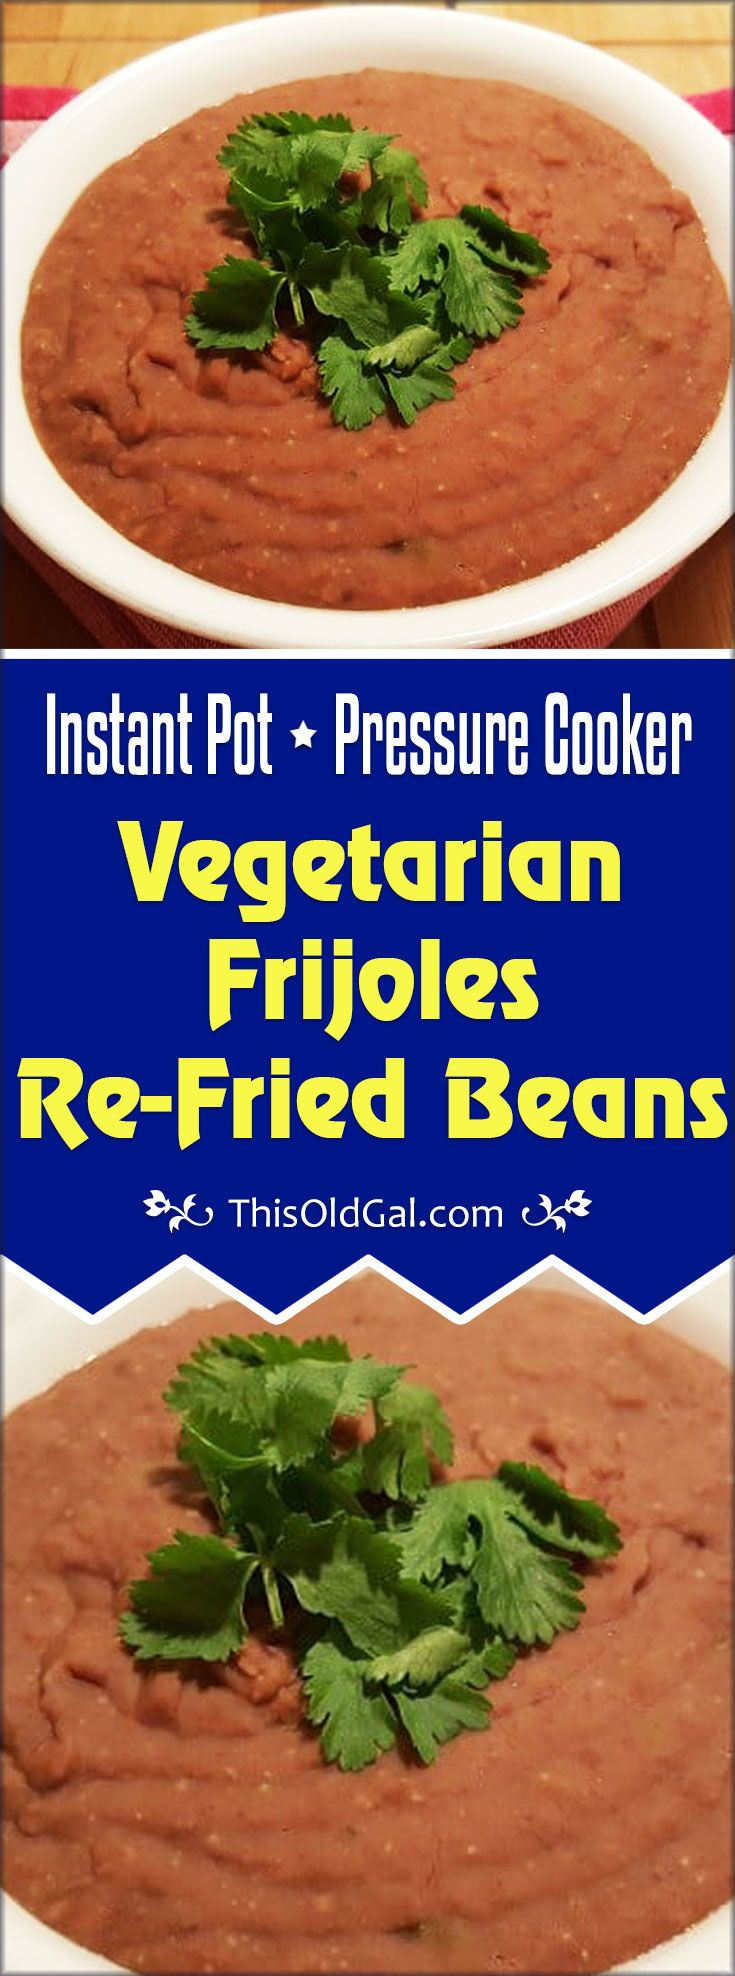 Pressure Cooker Vegetarian Frijoles Re-fried Beans are a delicious quick and super healthy side dish or main course.  Wonderful over rice, in burritos, in a salad. via @thisoldgalcooks